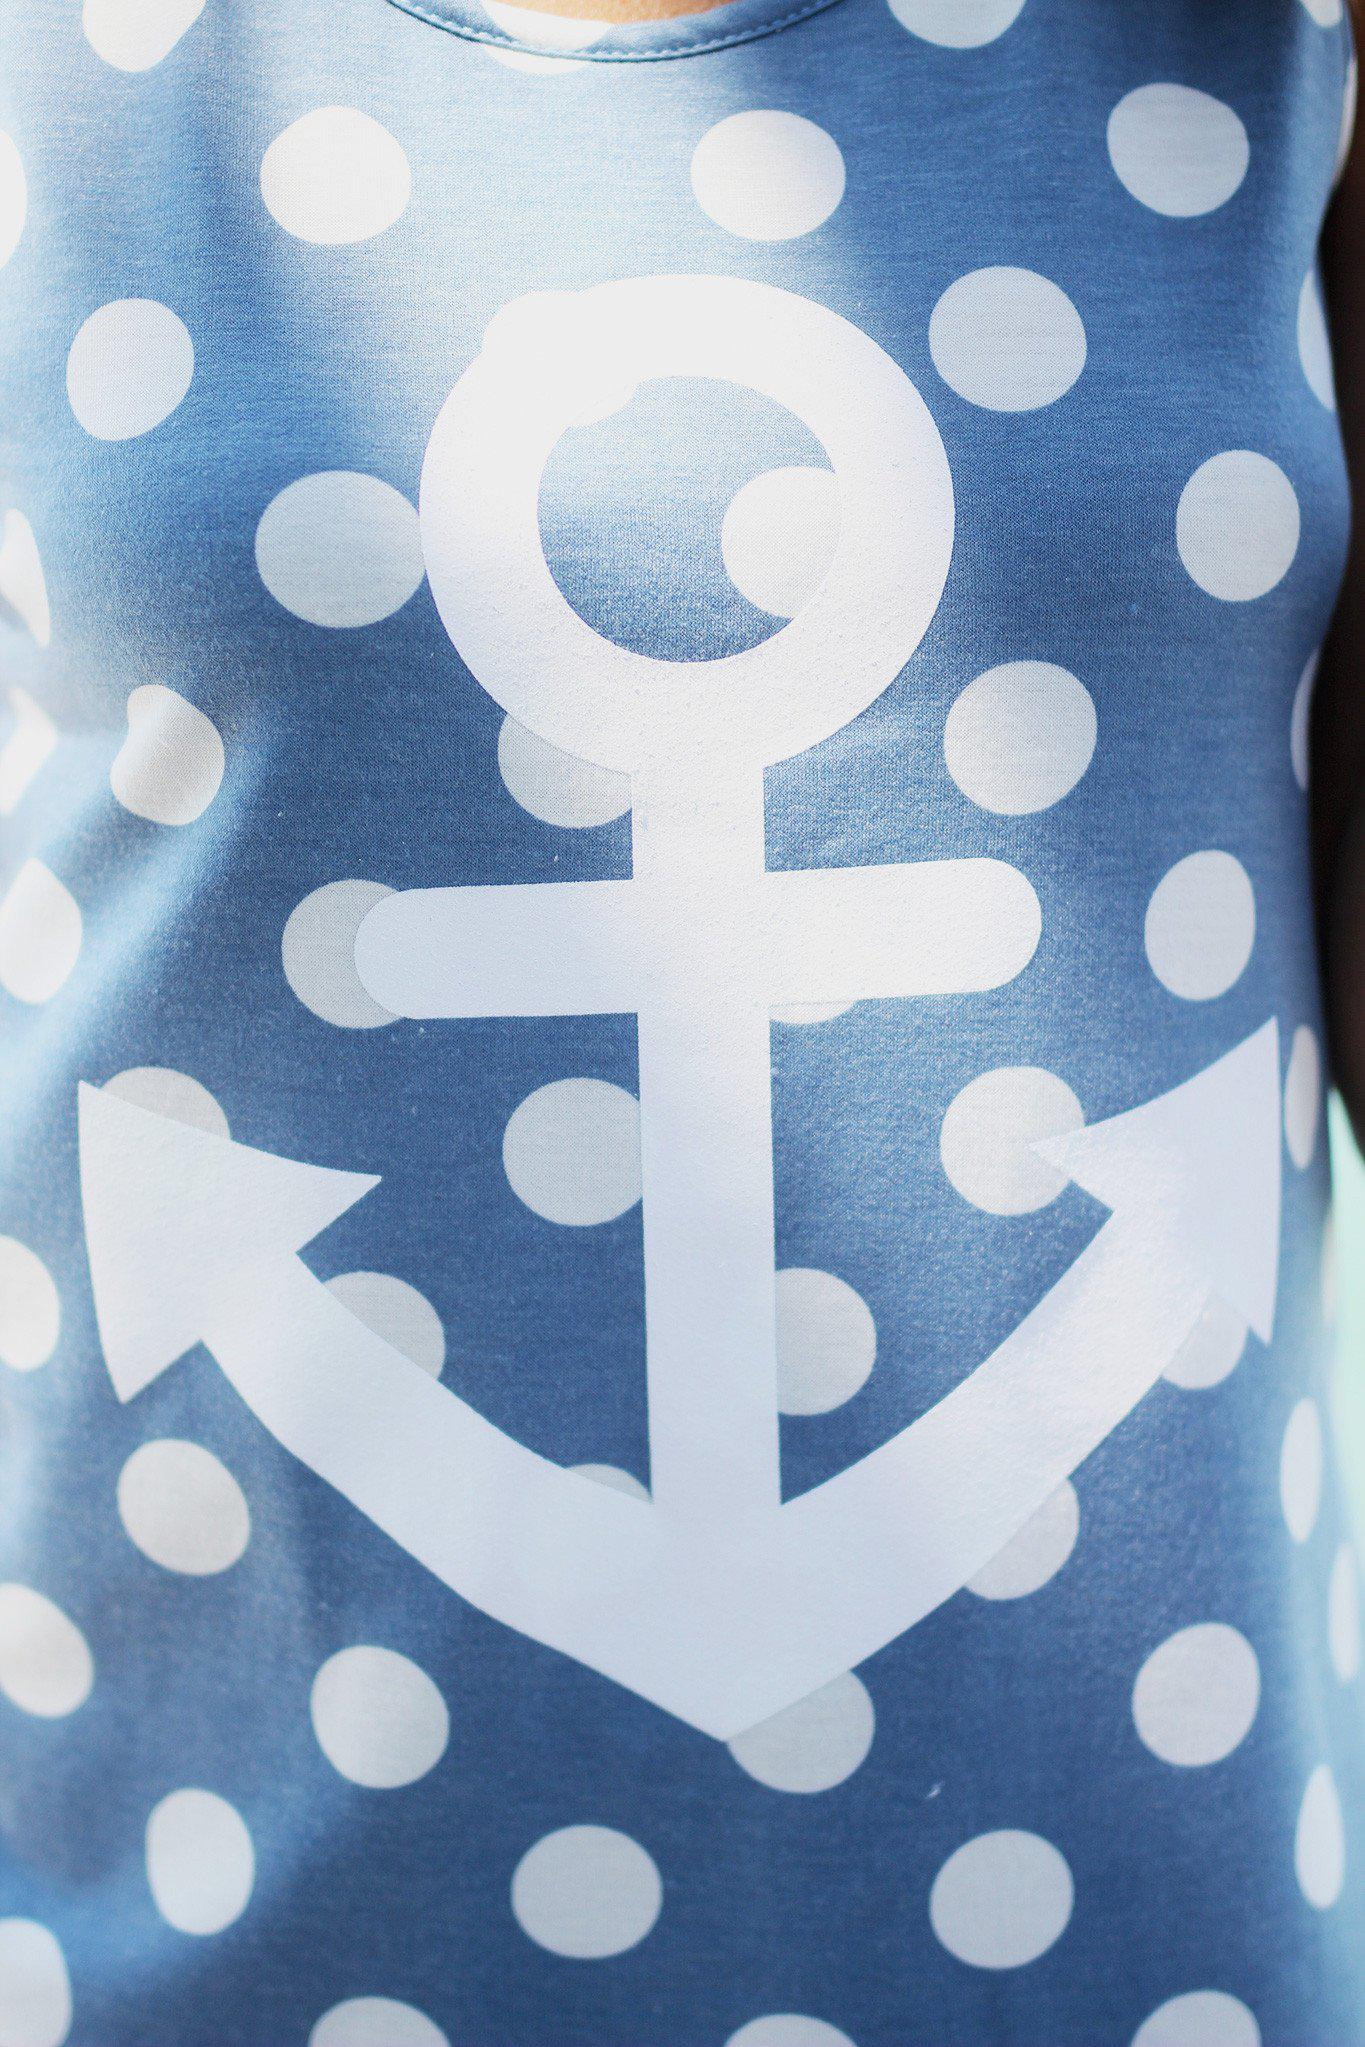 Blue Polka Dot Anchor Tank Top